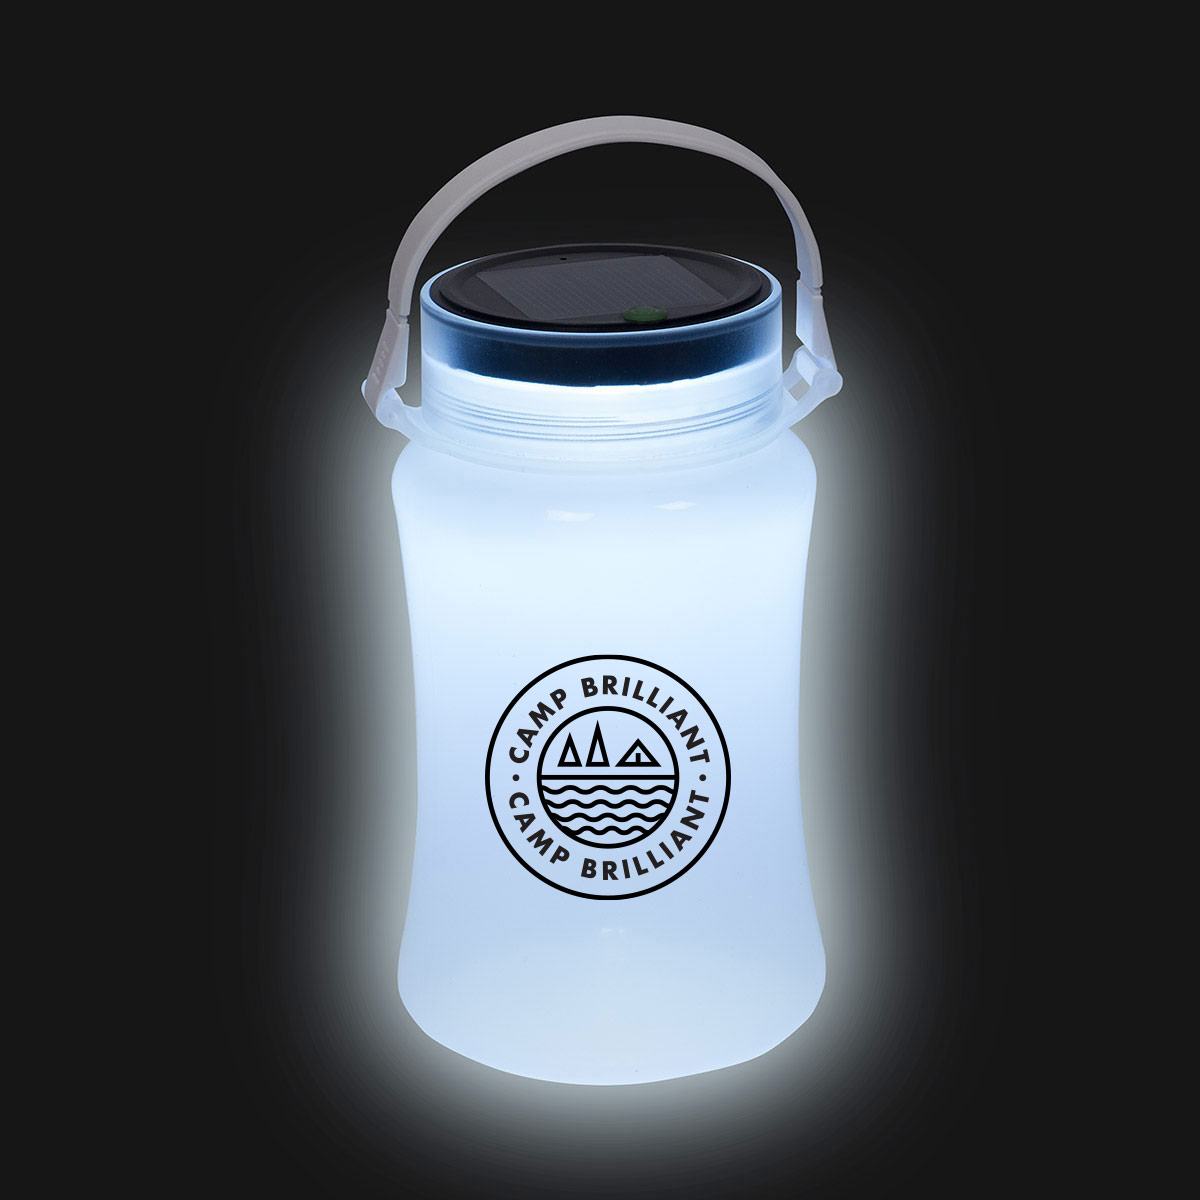 229234 foldable waterproof container with solar light one color only one location imprint